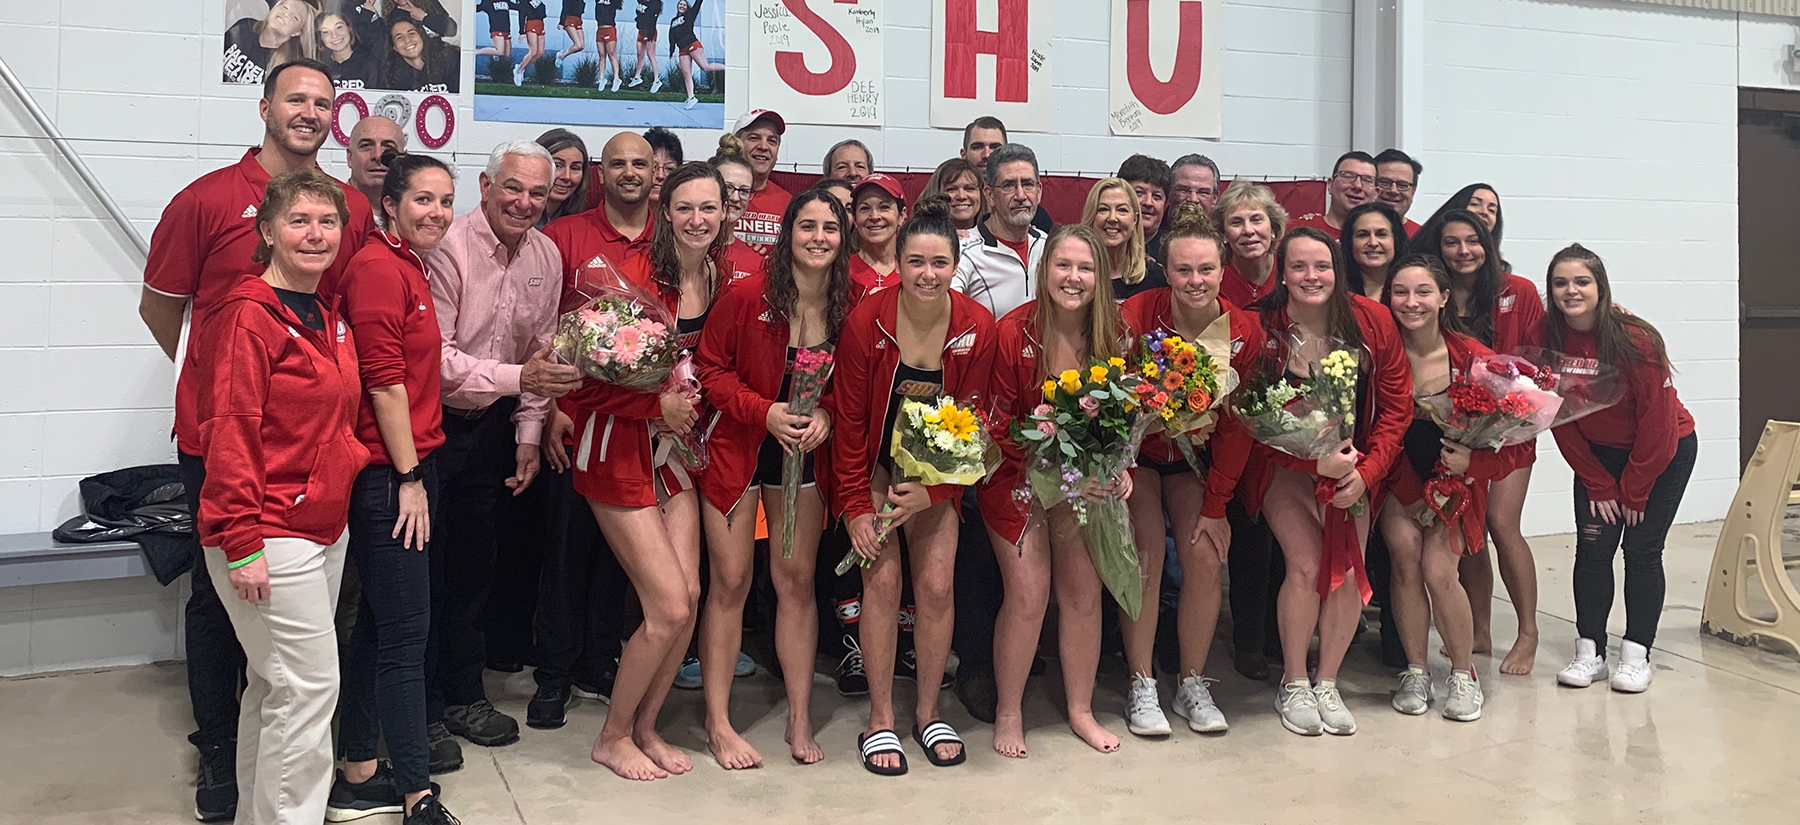 Swimming and Diving Defeats Siena on Senior Day 170-126